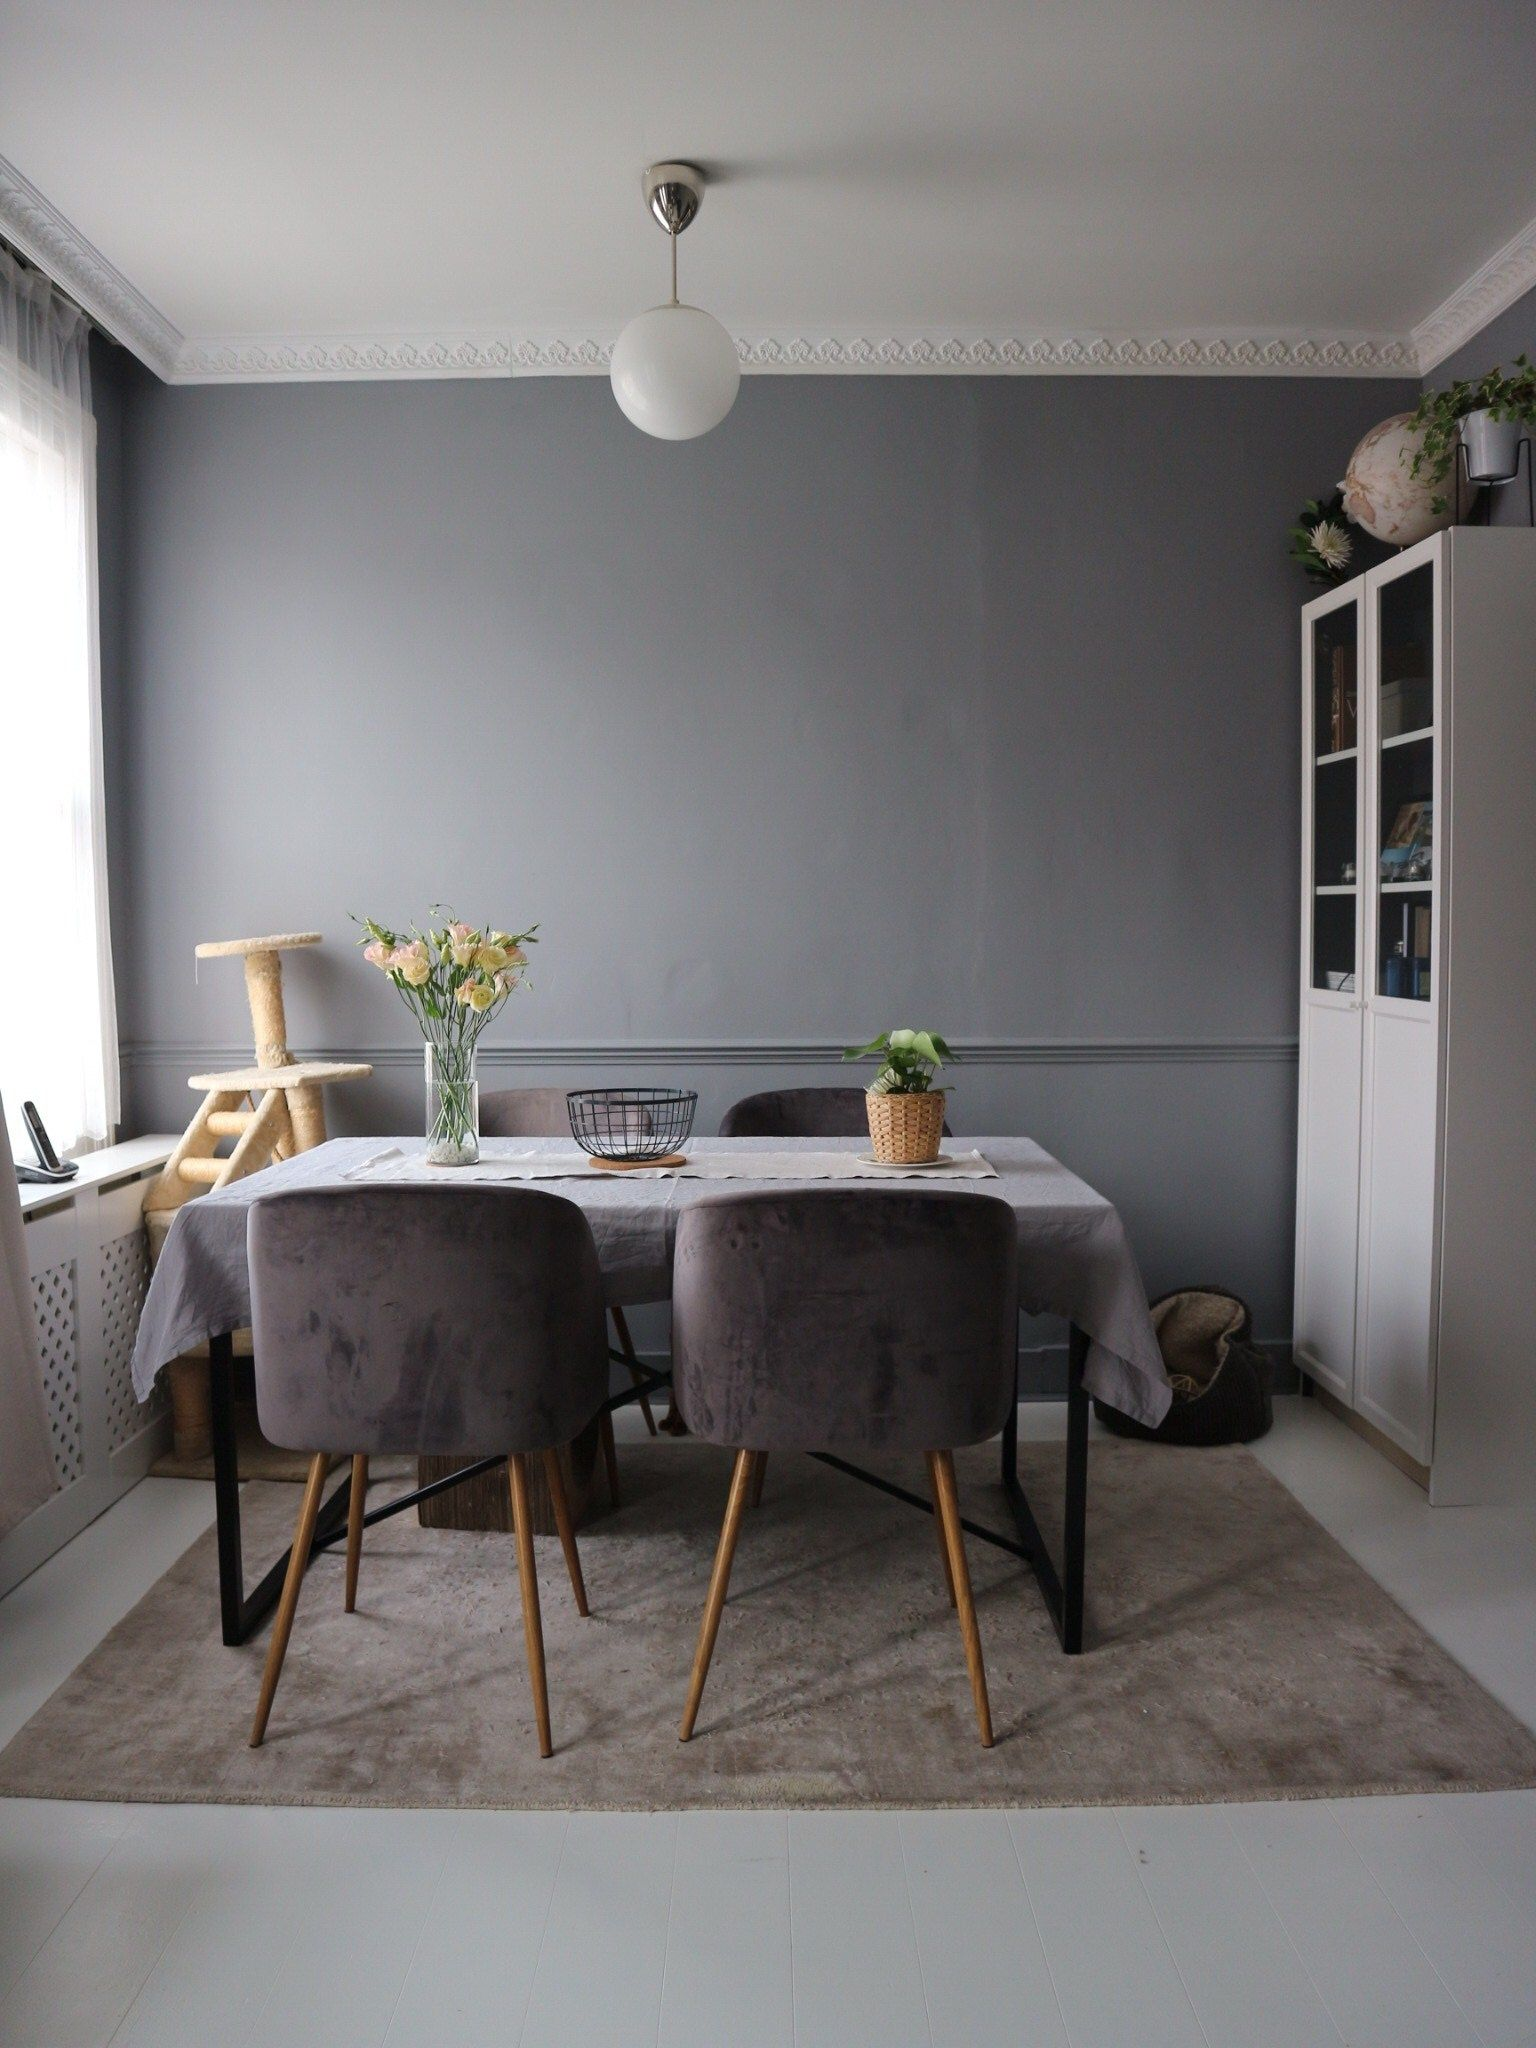 How To Paint An Old Laminate Flooring Into a Fresh ...